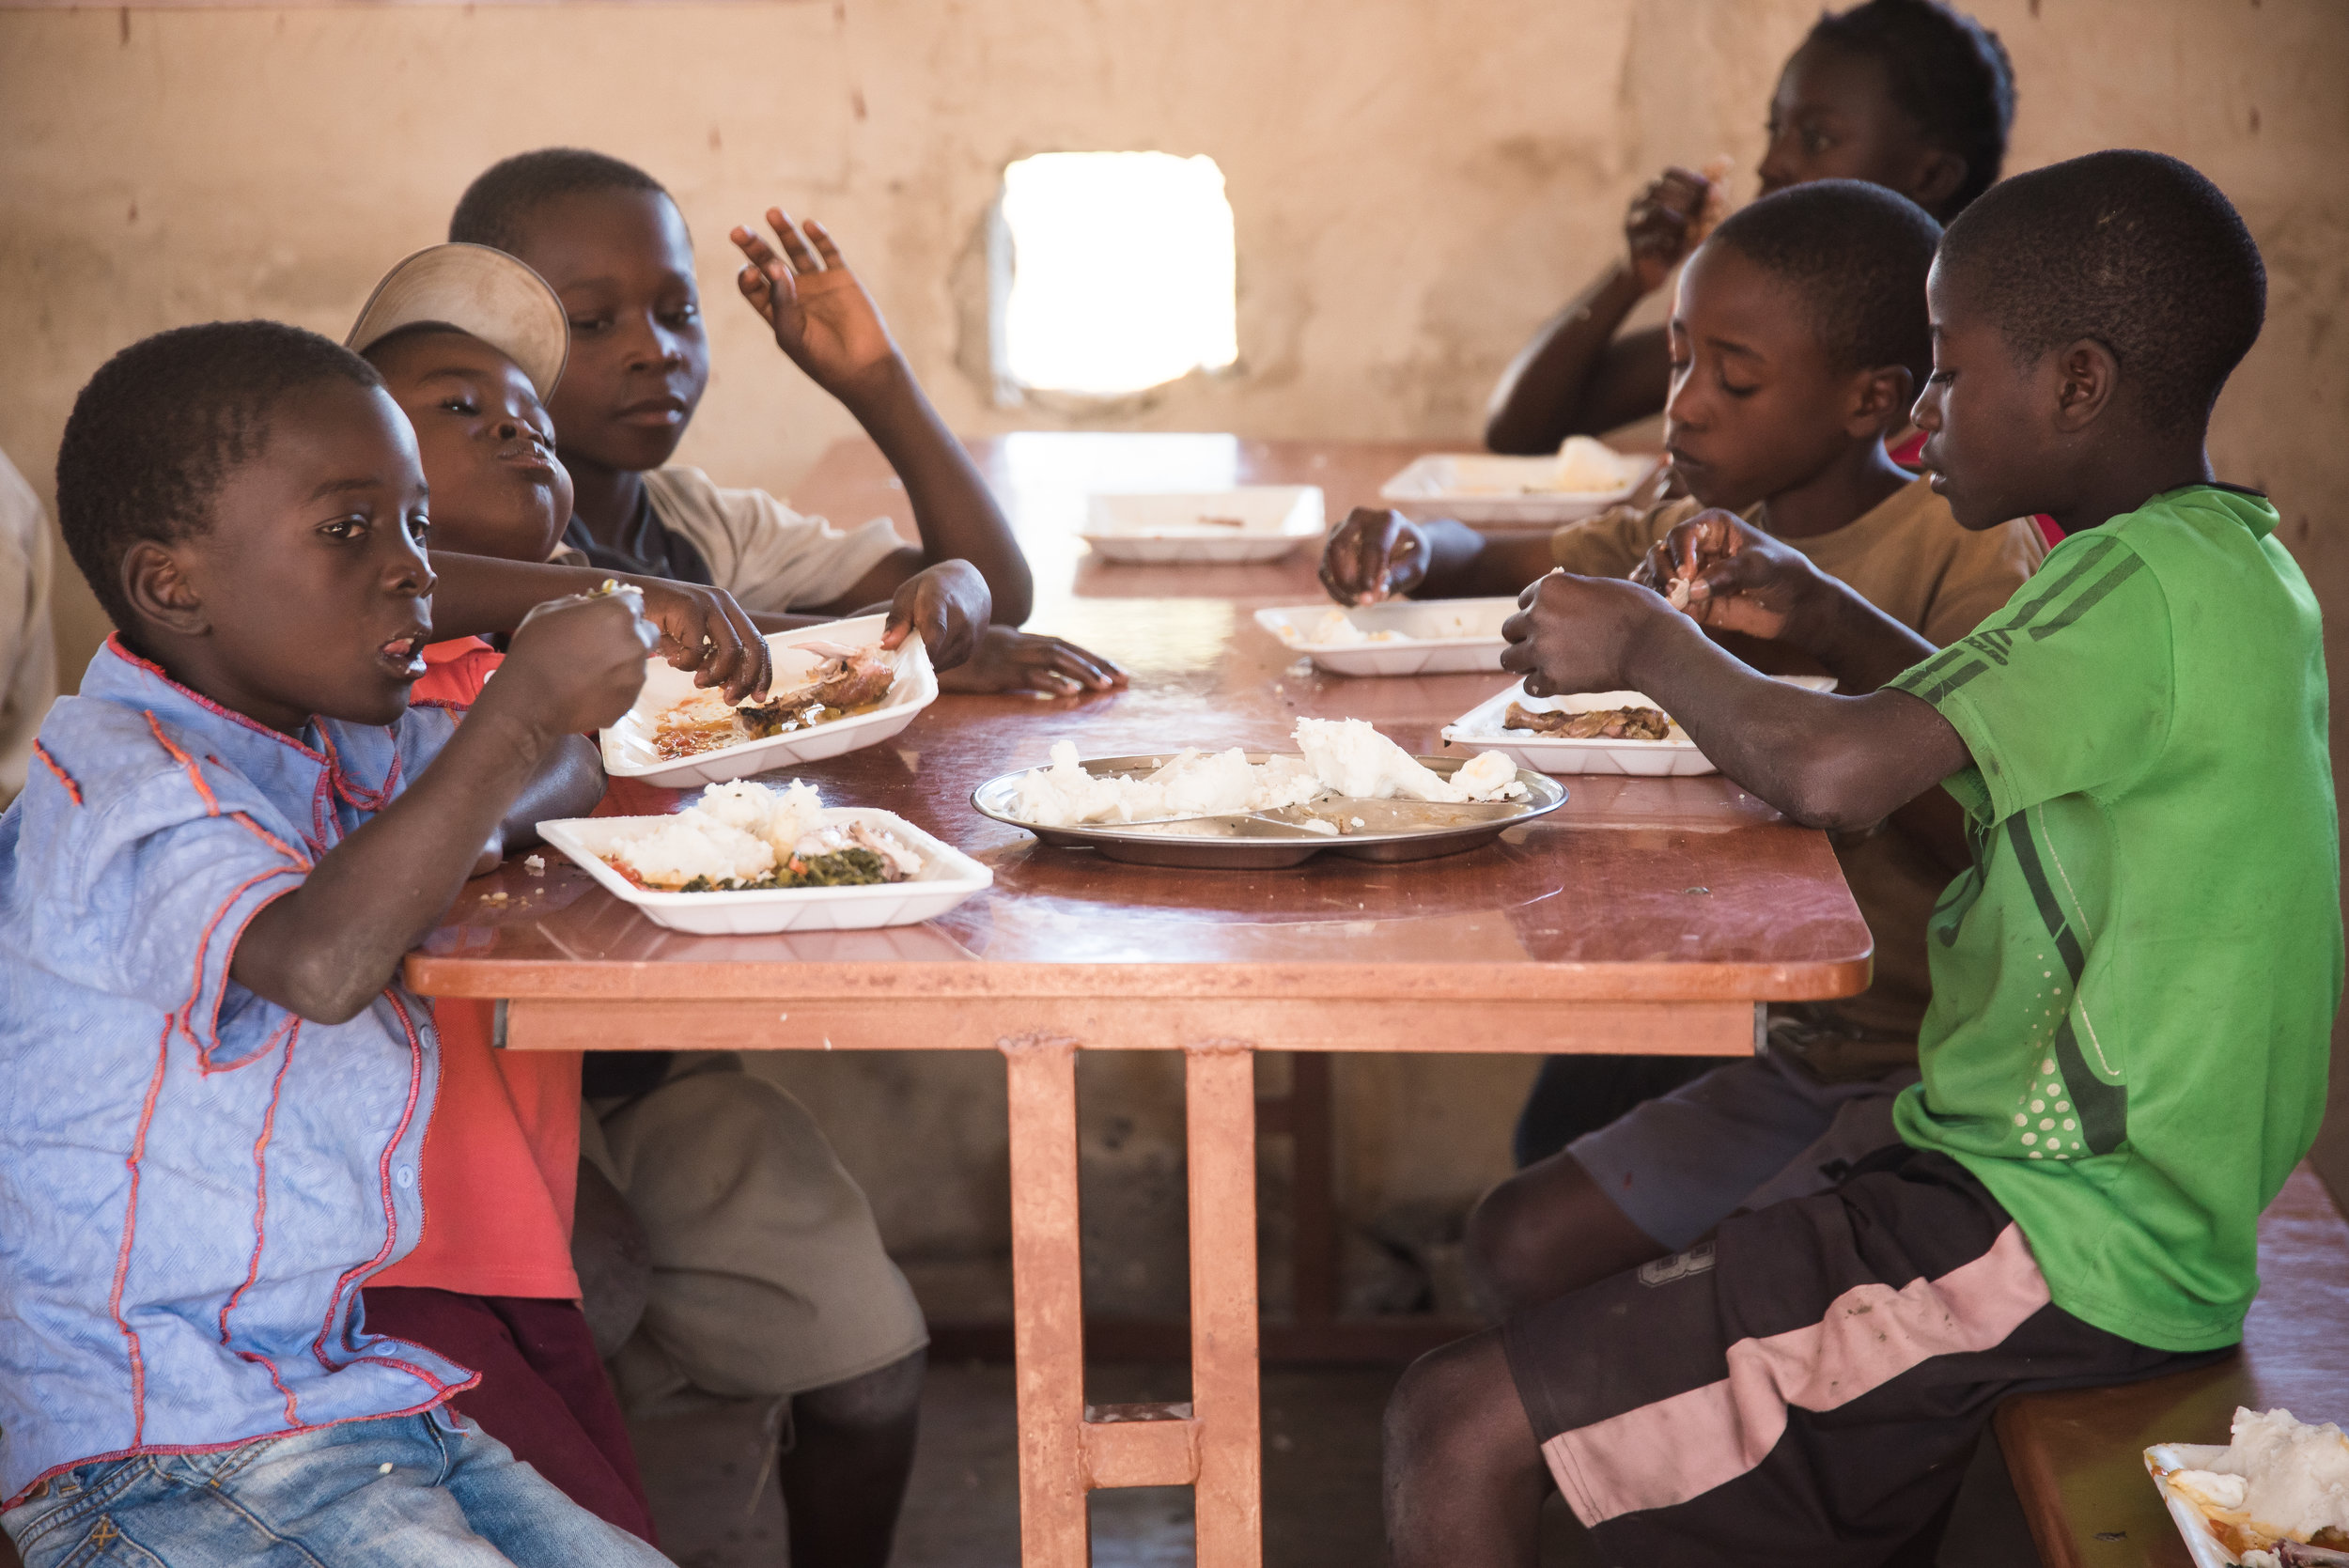 WE SERVED APPROXIMATELY 86,000 MEALS - FEEDING 243 CHILDREN AND 32 STAFF MEMBERS DAILY